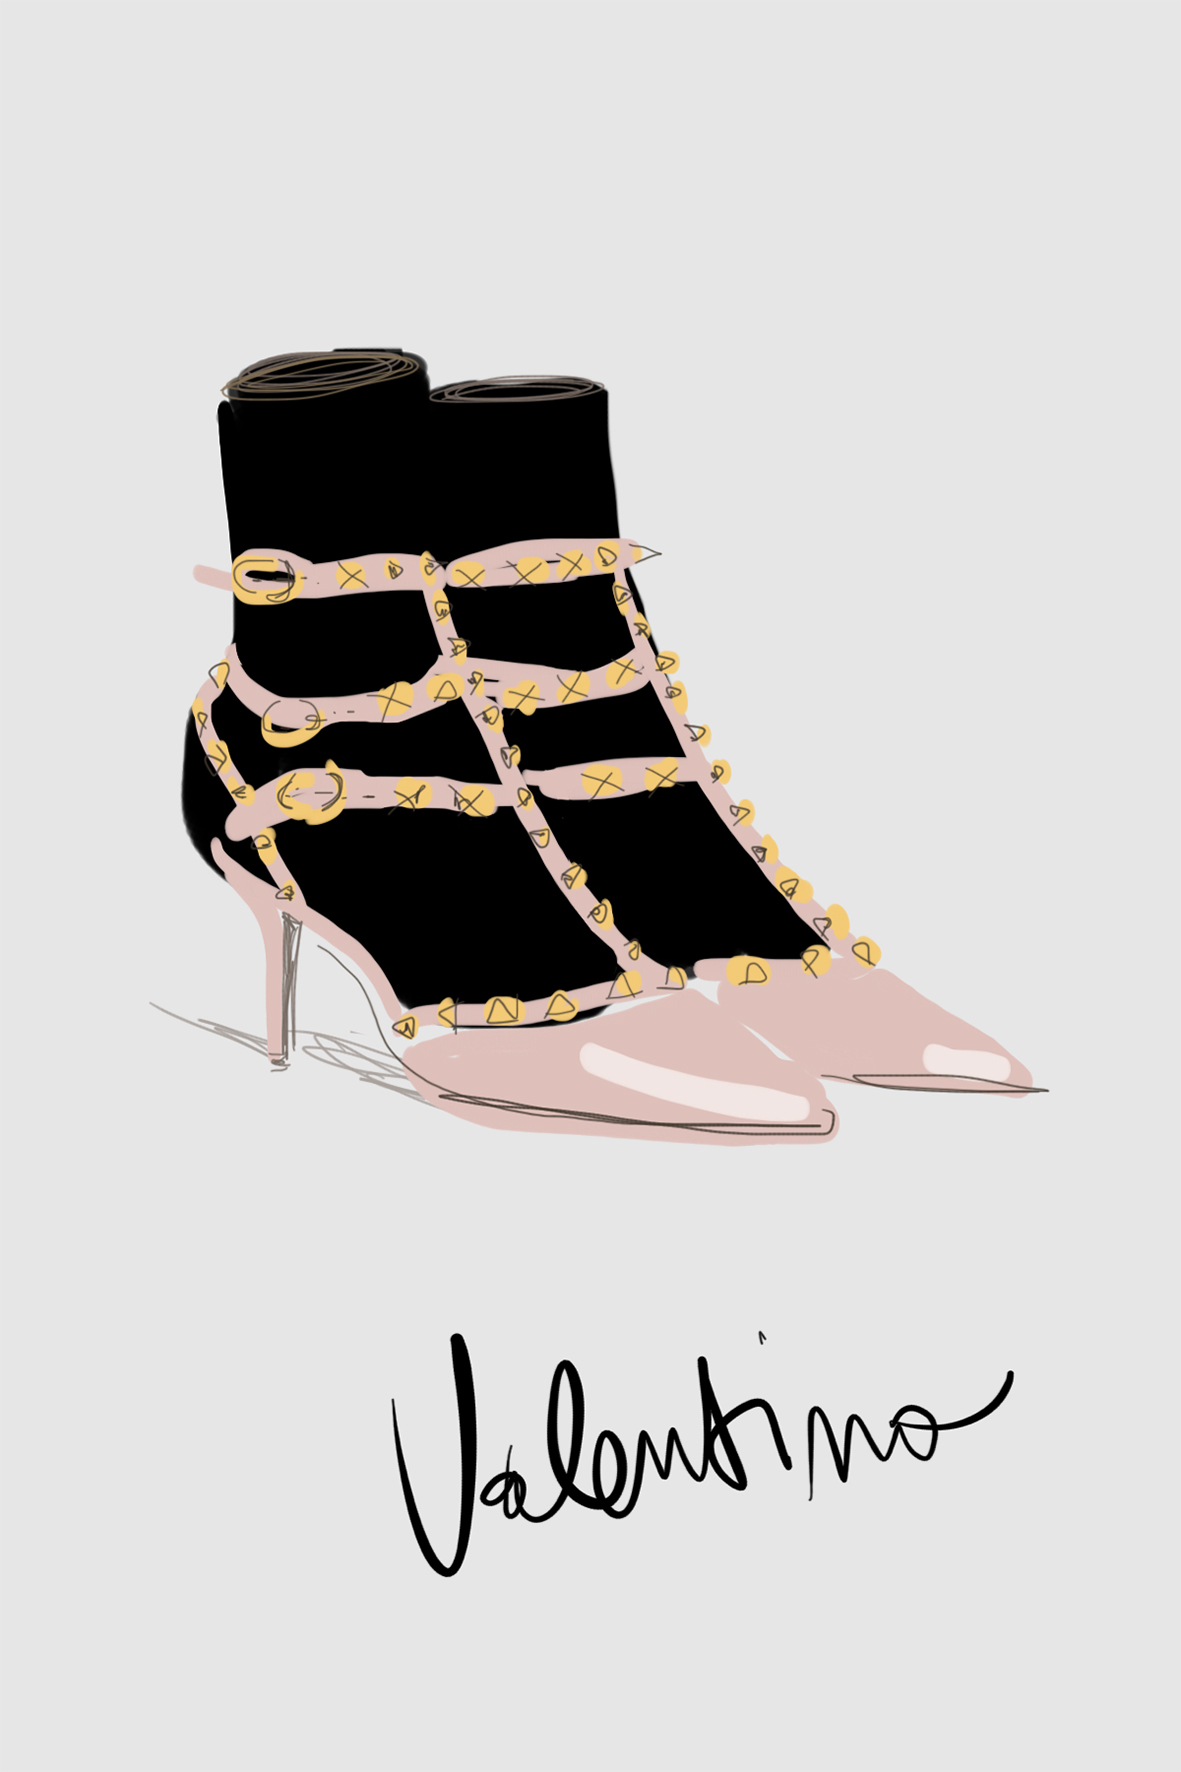 Fashion icon - Open Toe Illustration by Silvana Mariani